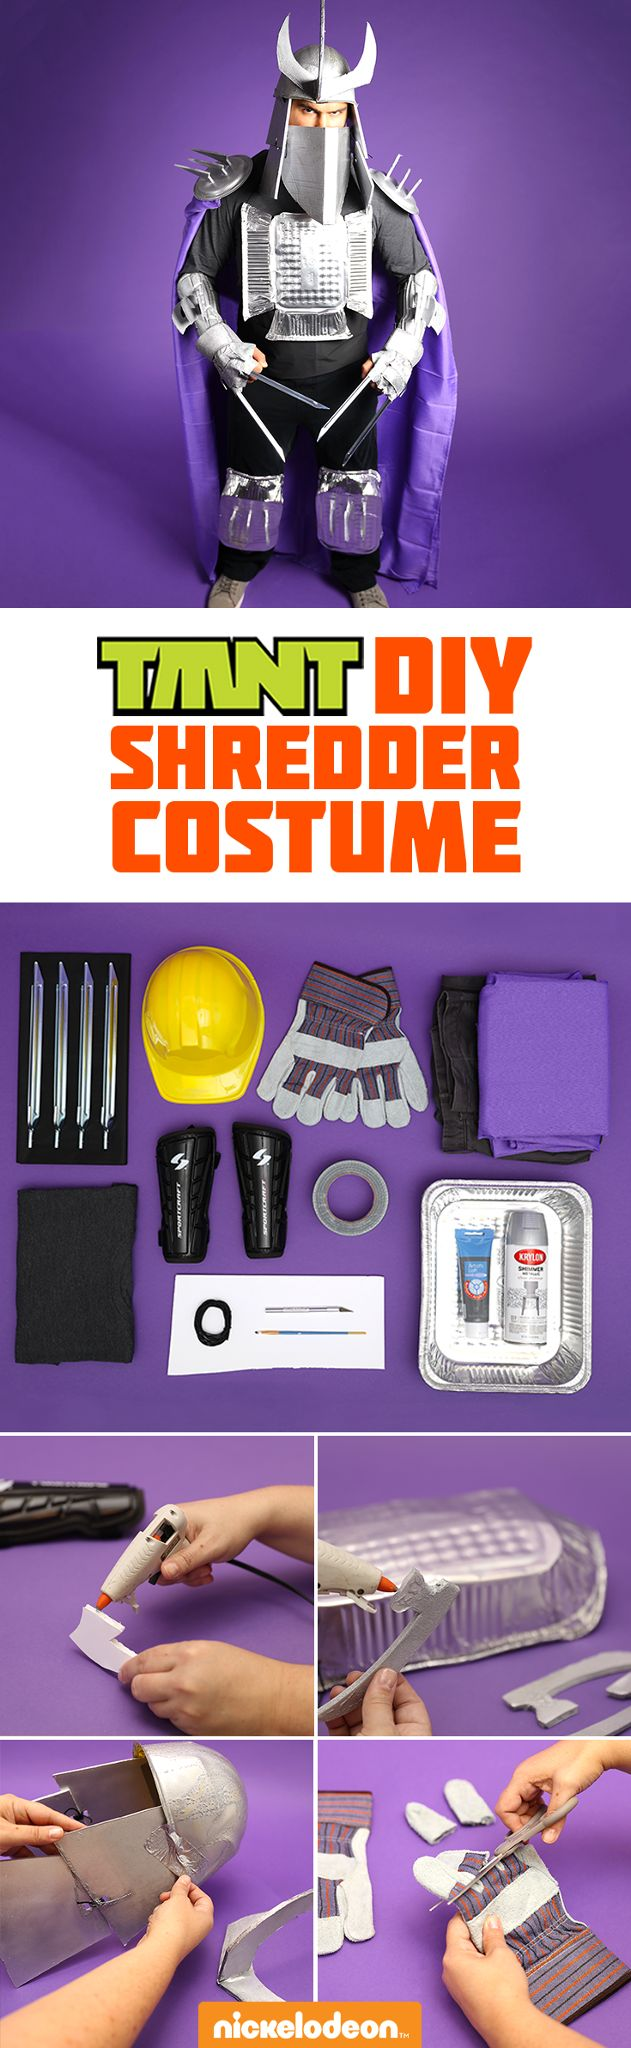 Show off your craft skills and TMNT fandom with this DIY Shredder Halloween costume! It's a quick, easy, inexpensive way to make a lasting impression. See how simple it is with this how-to tutorial!